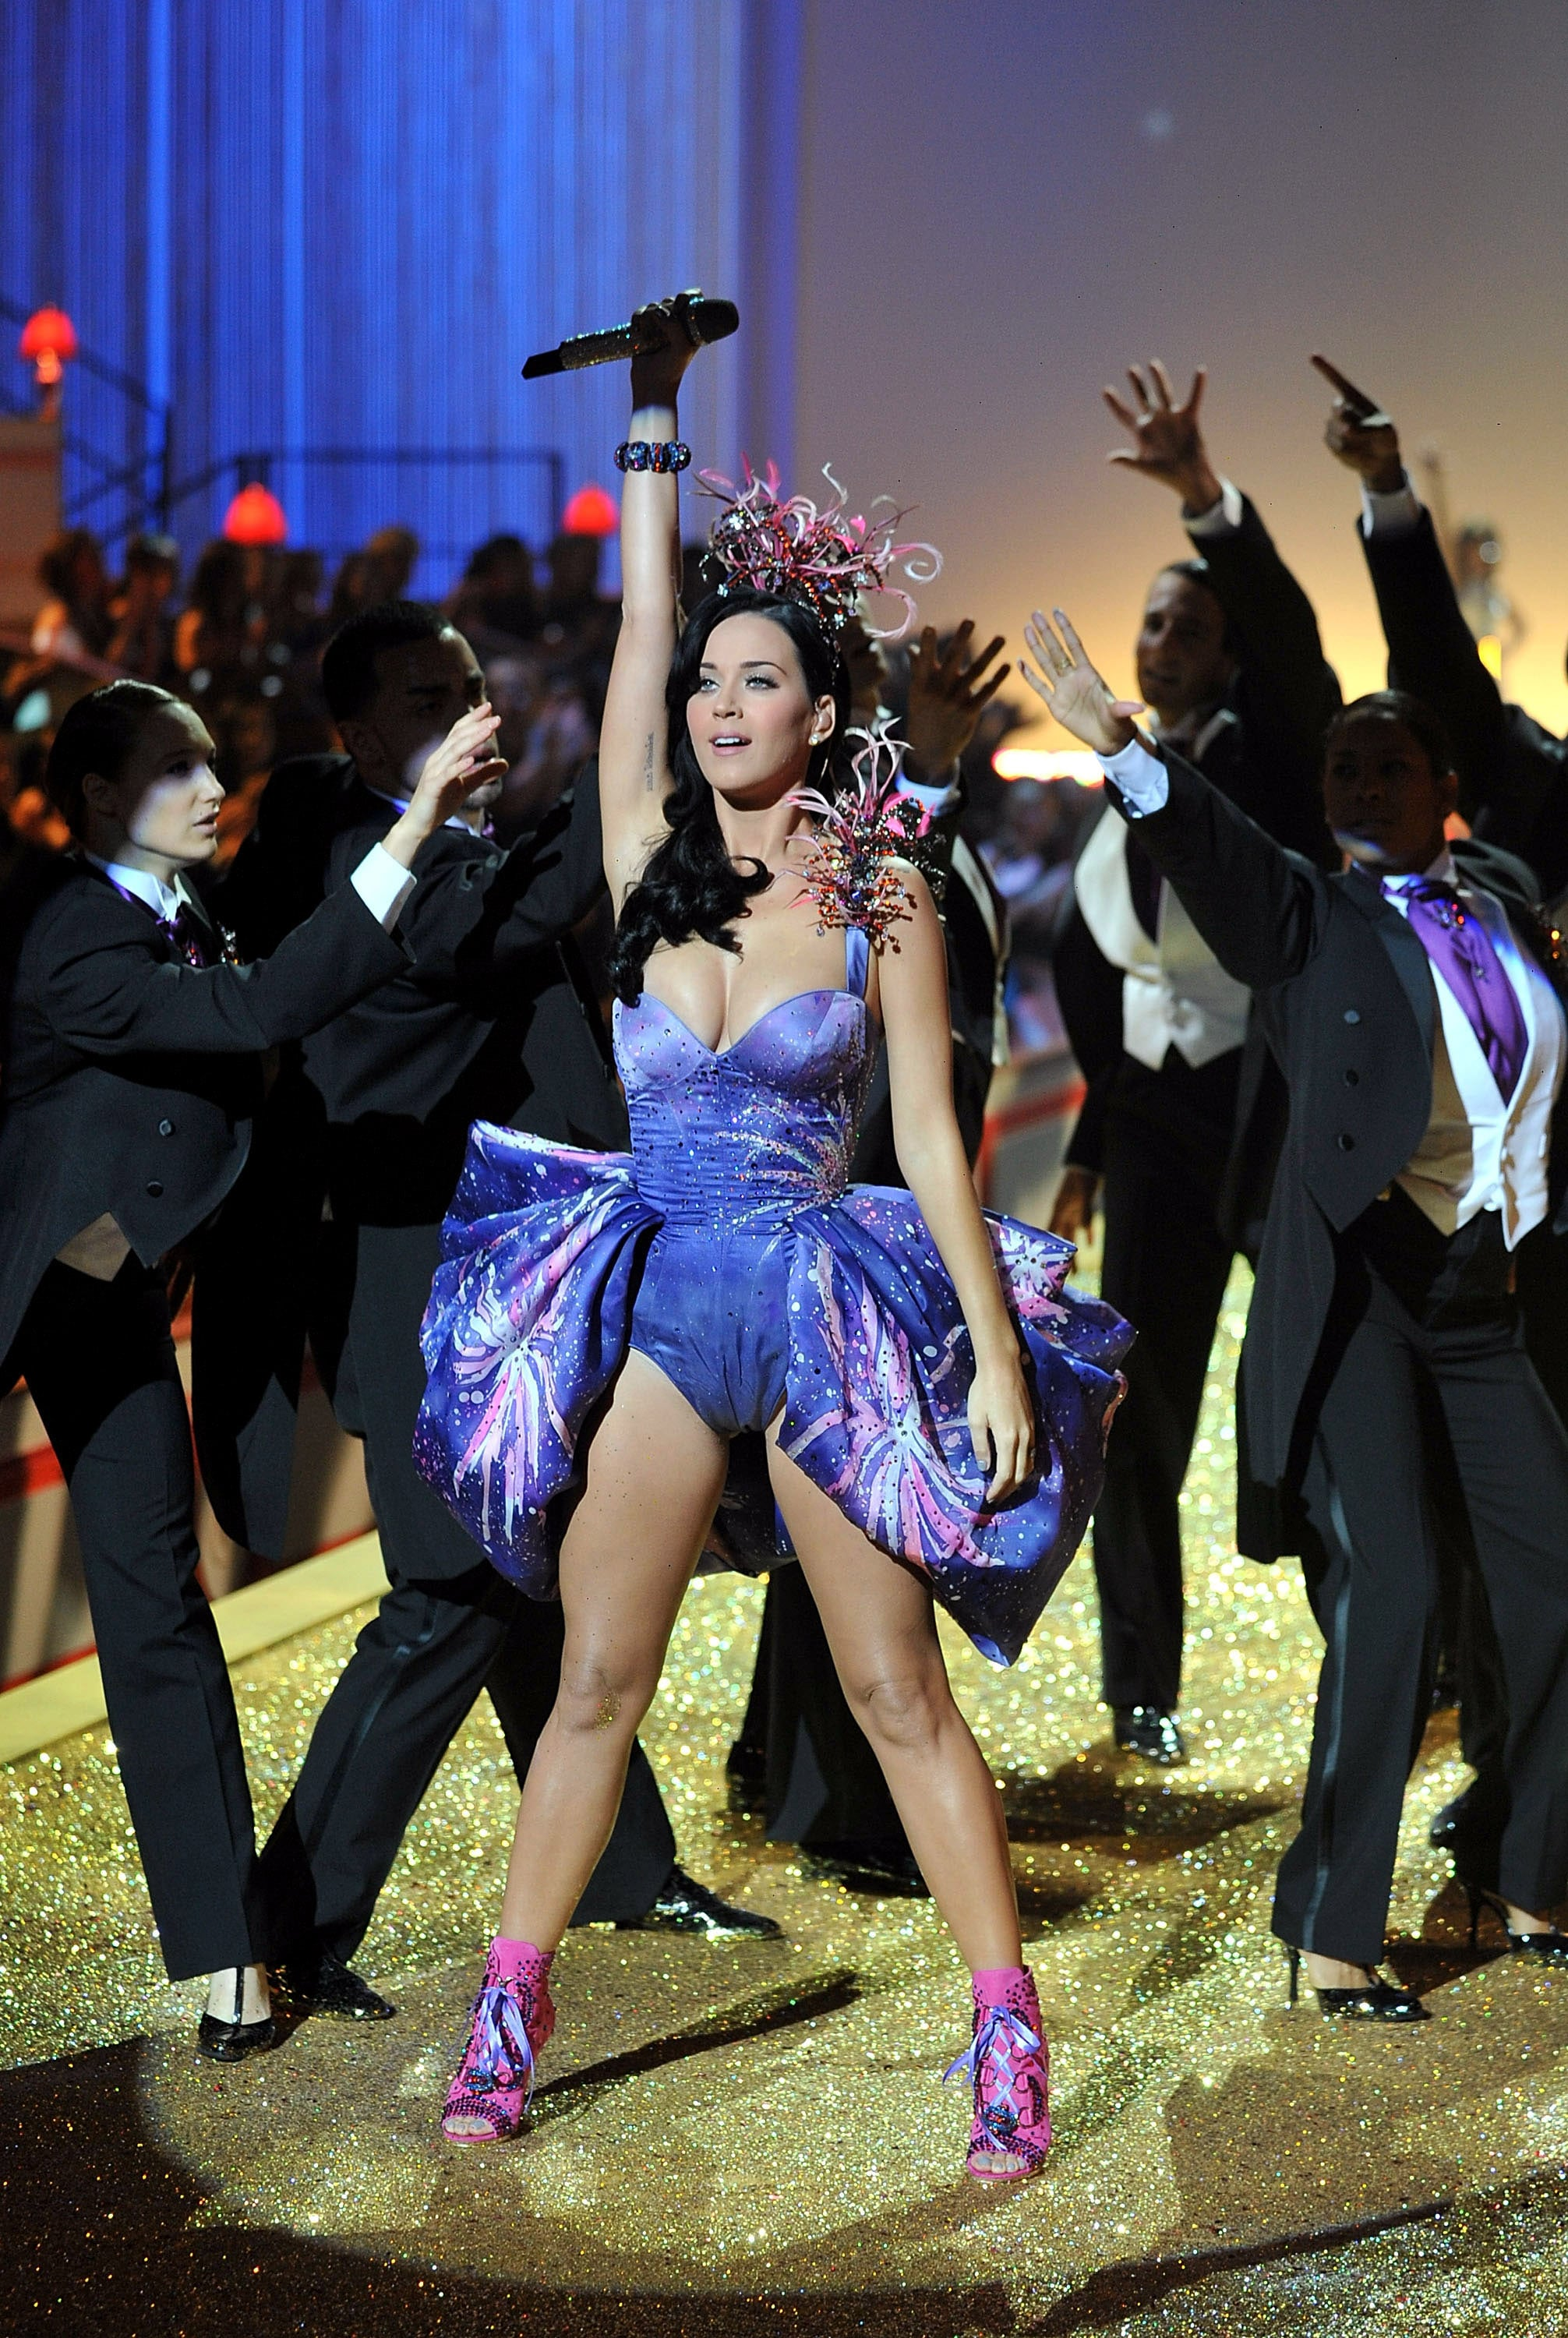 Katy Perry fit right in with the lingerie-clad Angels in 2010.